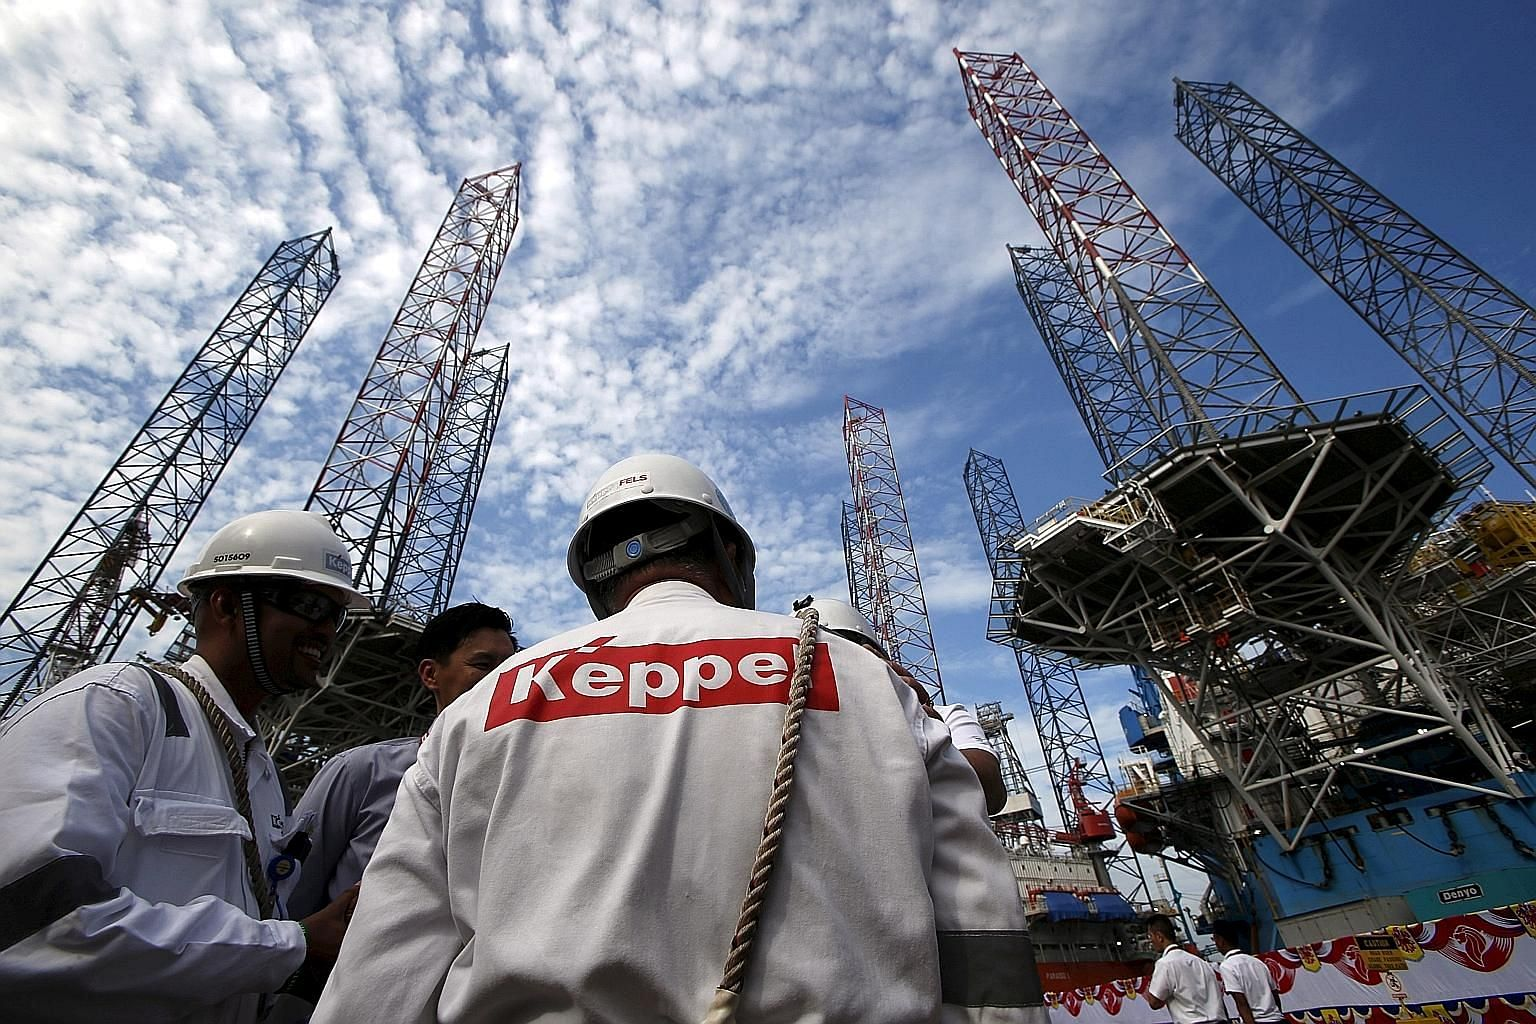 Keppel's group revenue slid 28.4 per cent to $1.25 billion, dragged down by the offshore and marine business, where turnover fell 41 per cent to $483 million. Operating profit came in at just $4 million due to lower volume of work.